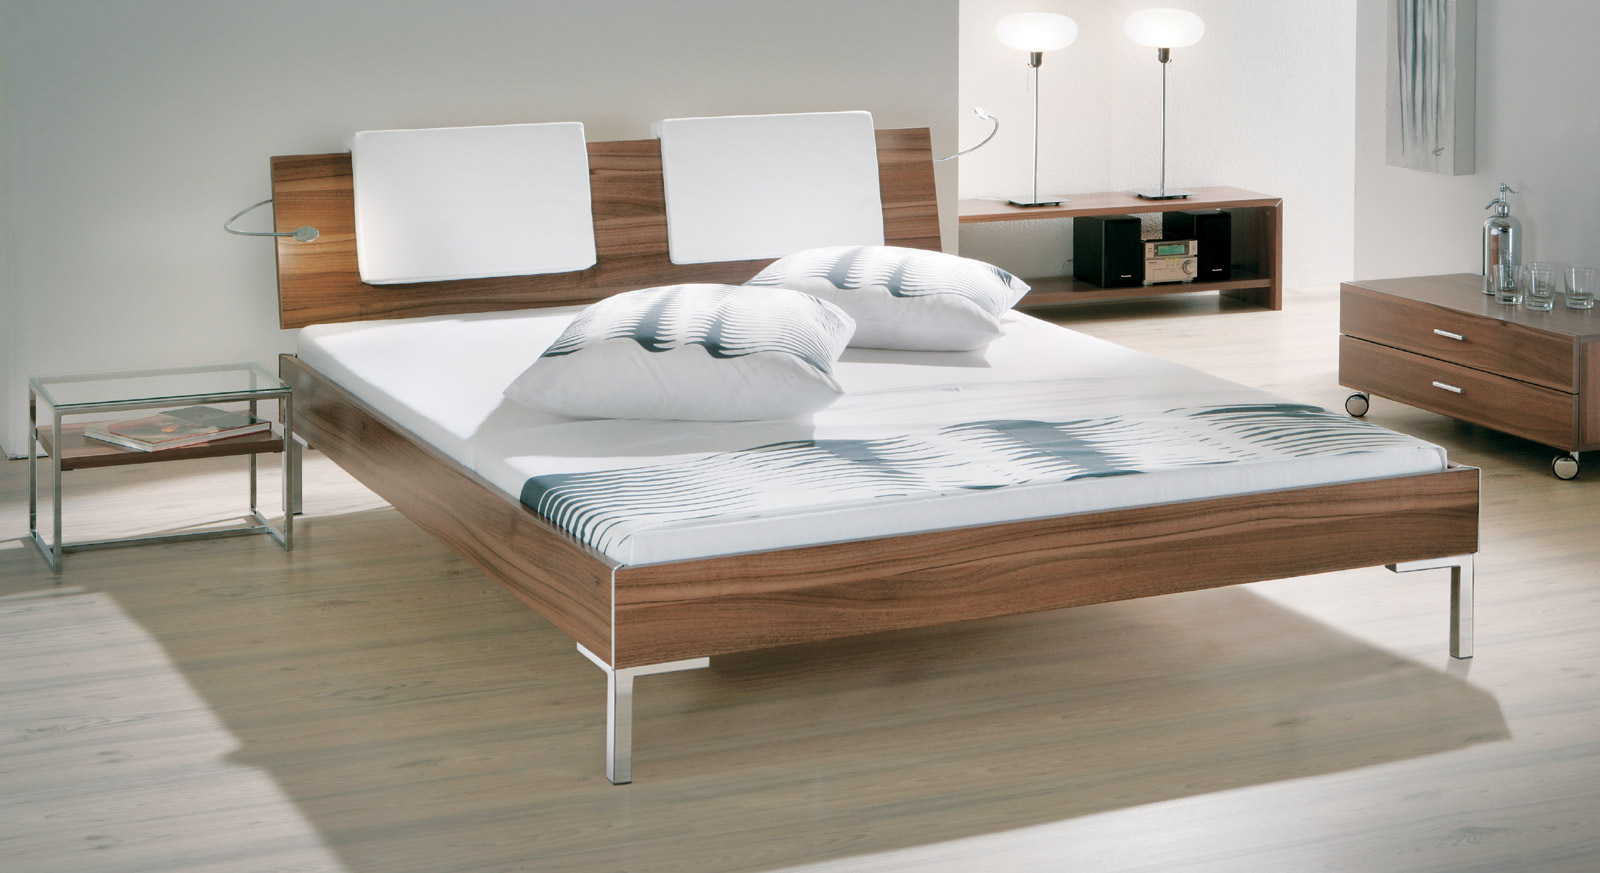 billiges designer bett le n z b in nussbaum optik. Black Bedroom Furniture Sets. Home Design Ideas